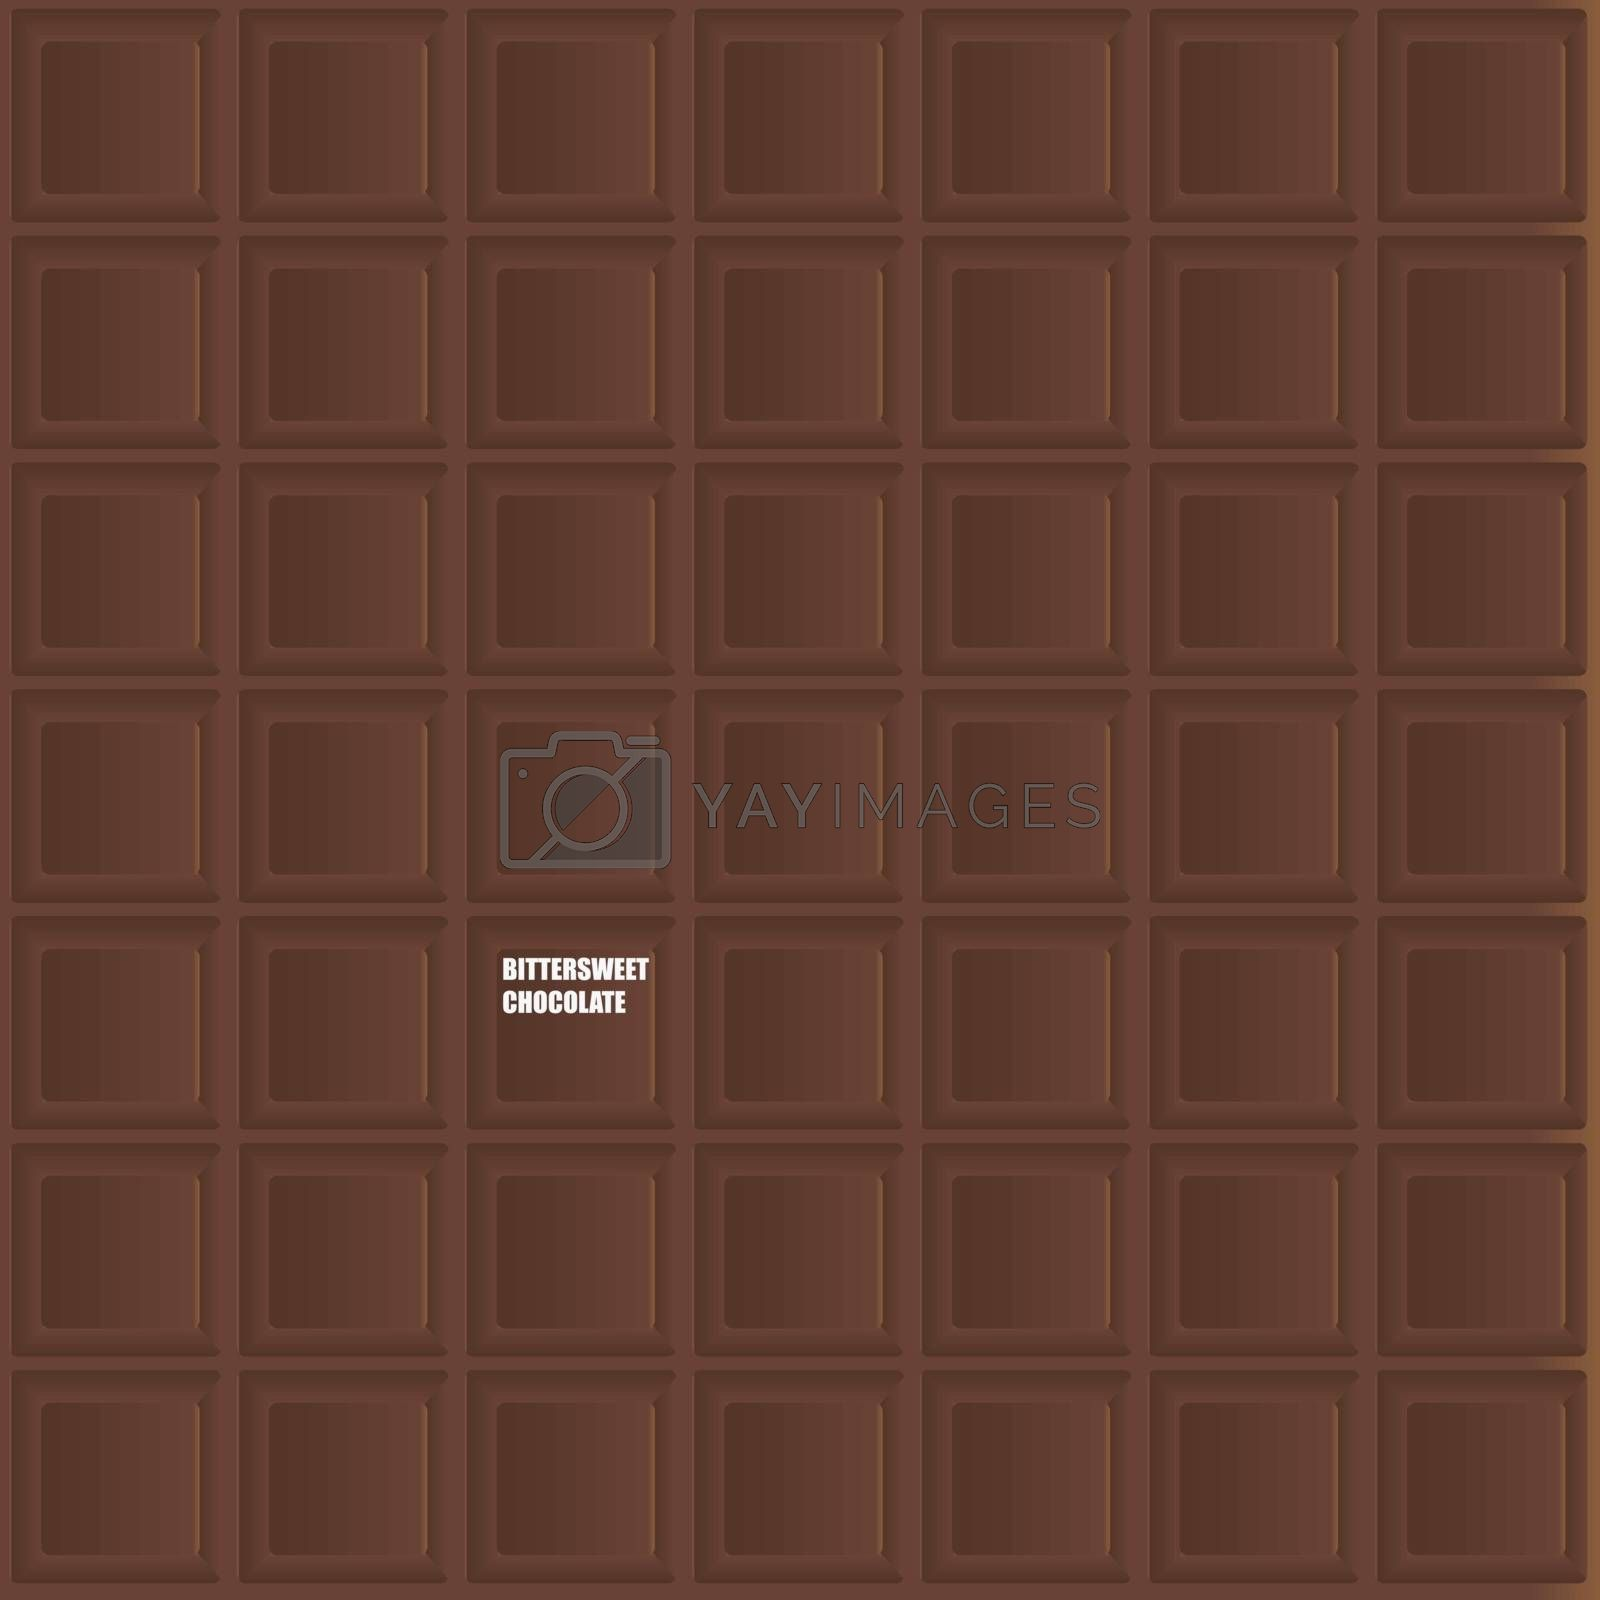 Royalty free image of Bittersweet Chocolate by VIPDesignUSA